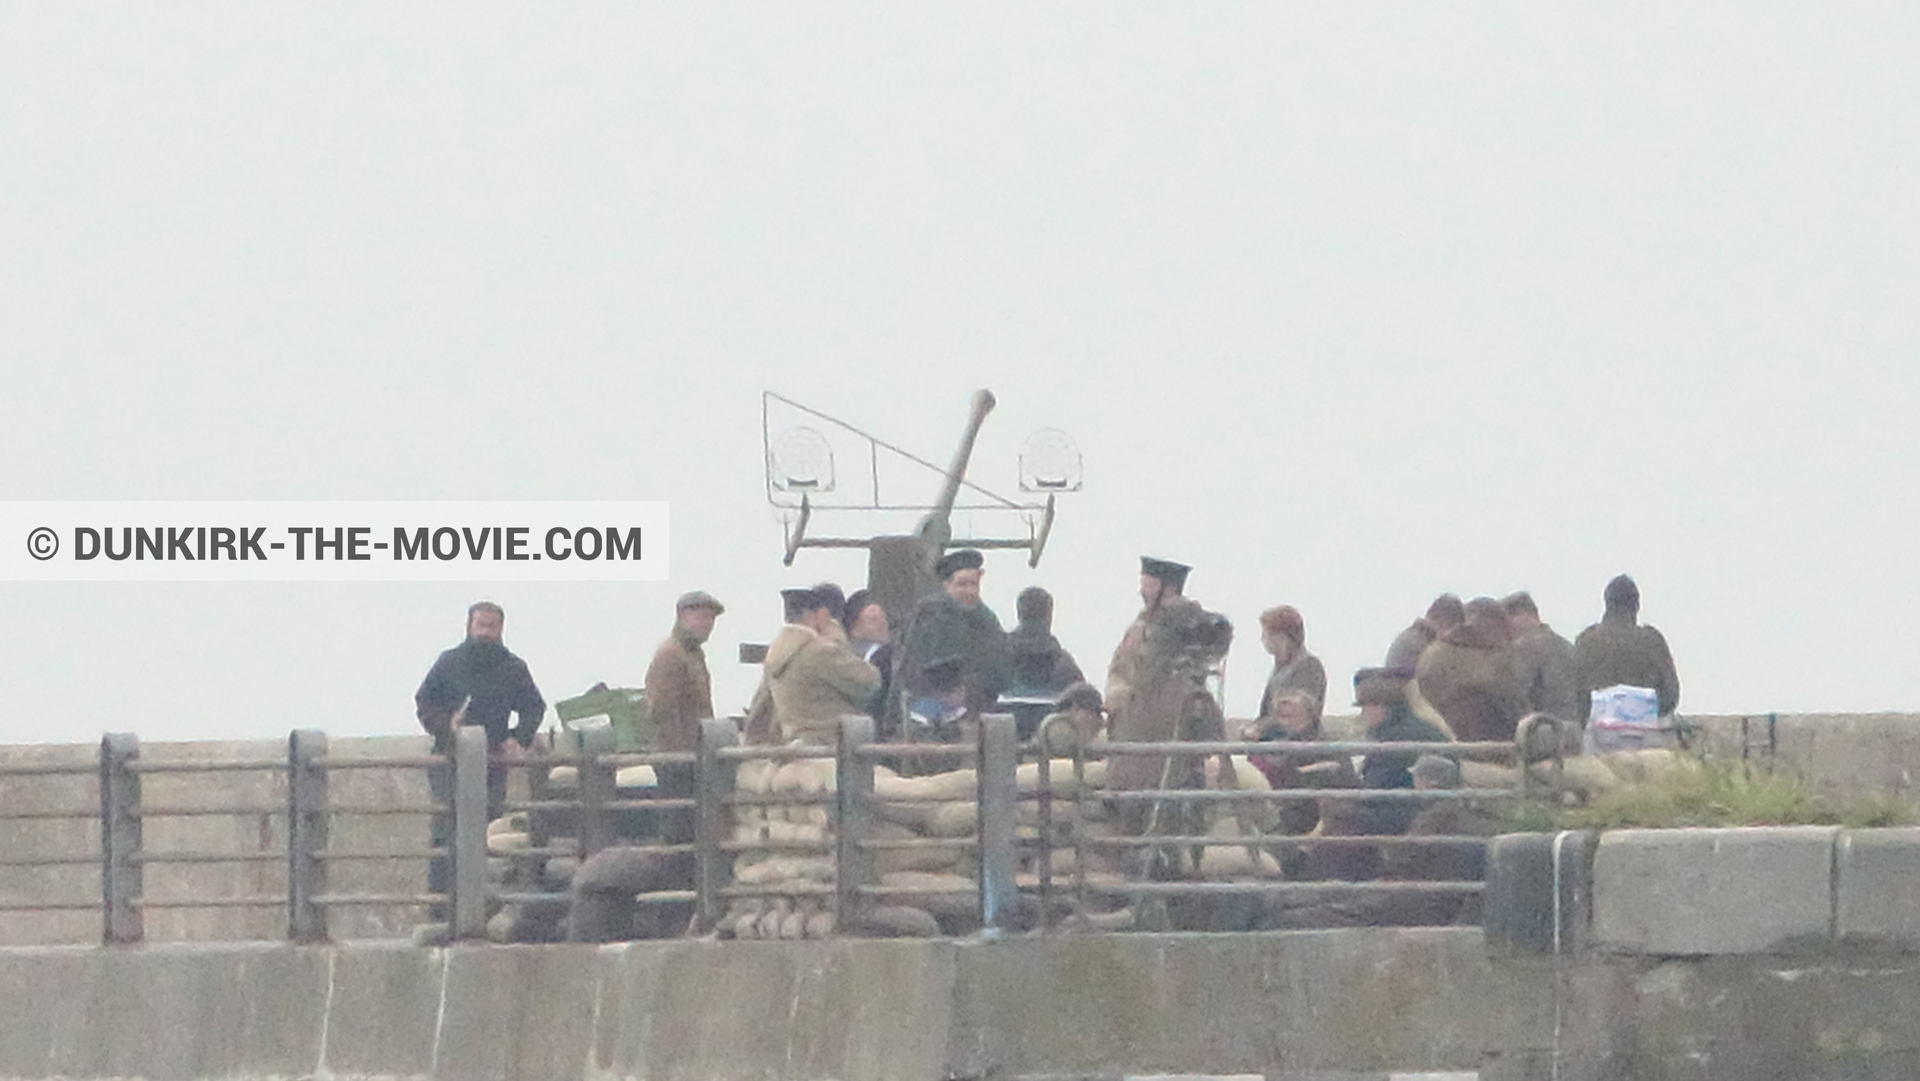 Picture with cannon, grey sky, supernumeraries, EST pier, technical team,  from behind the scene of the Dunkirk movie by Nolan